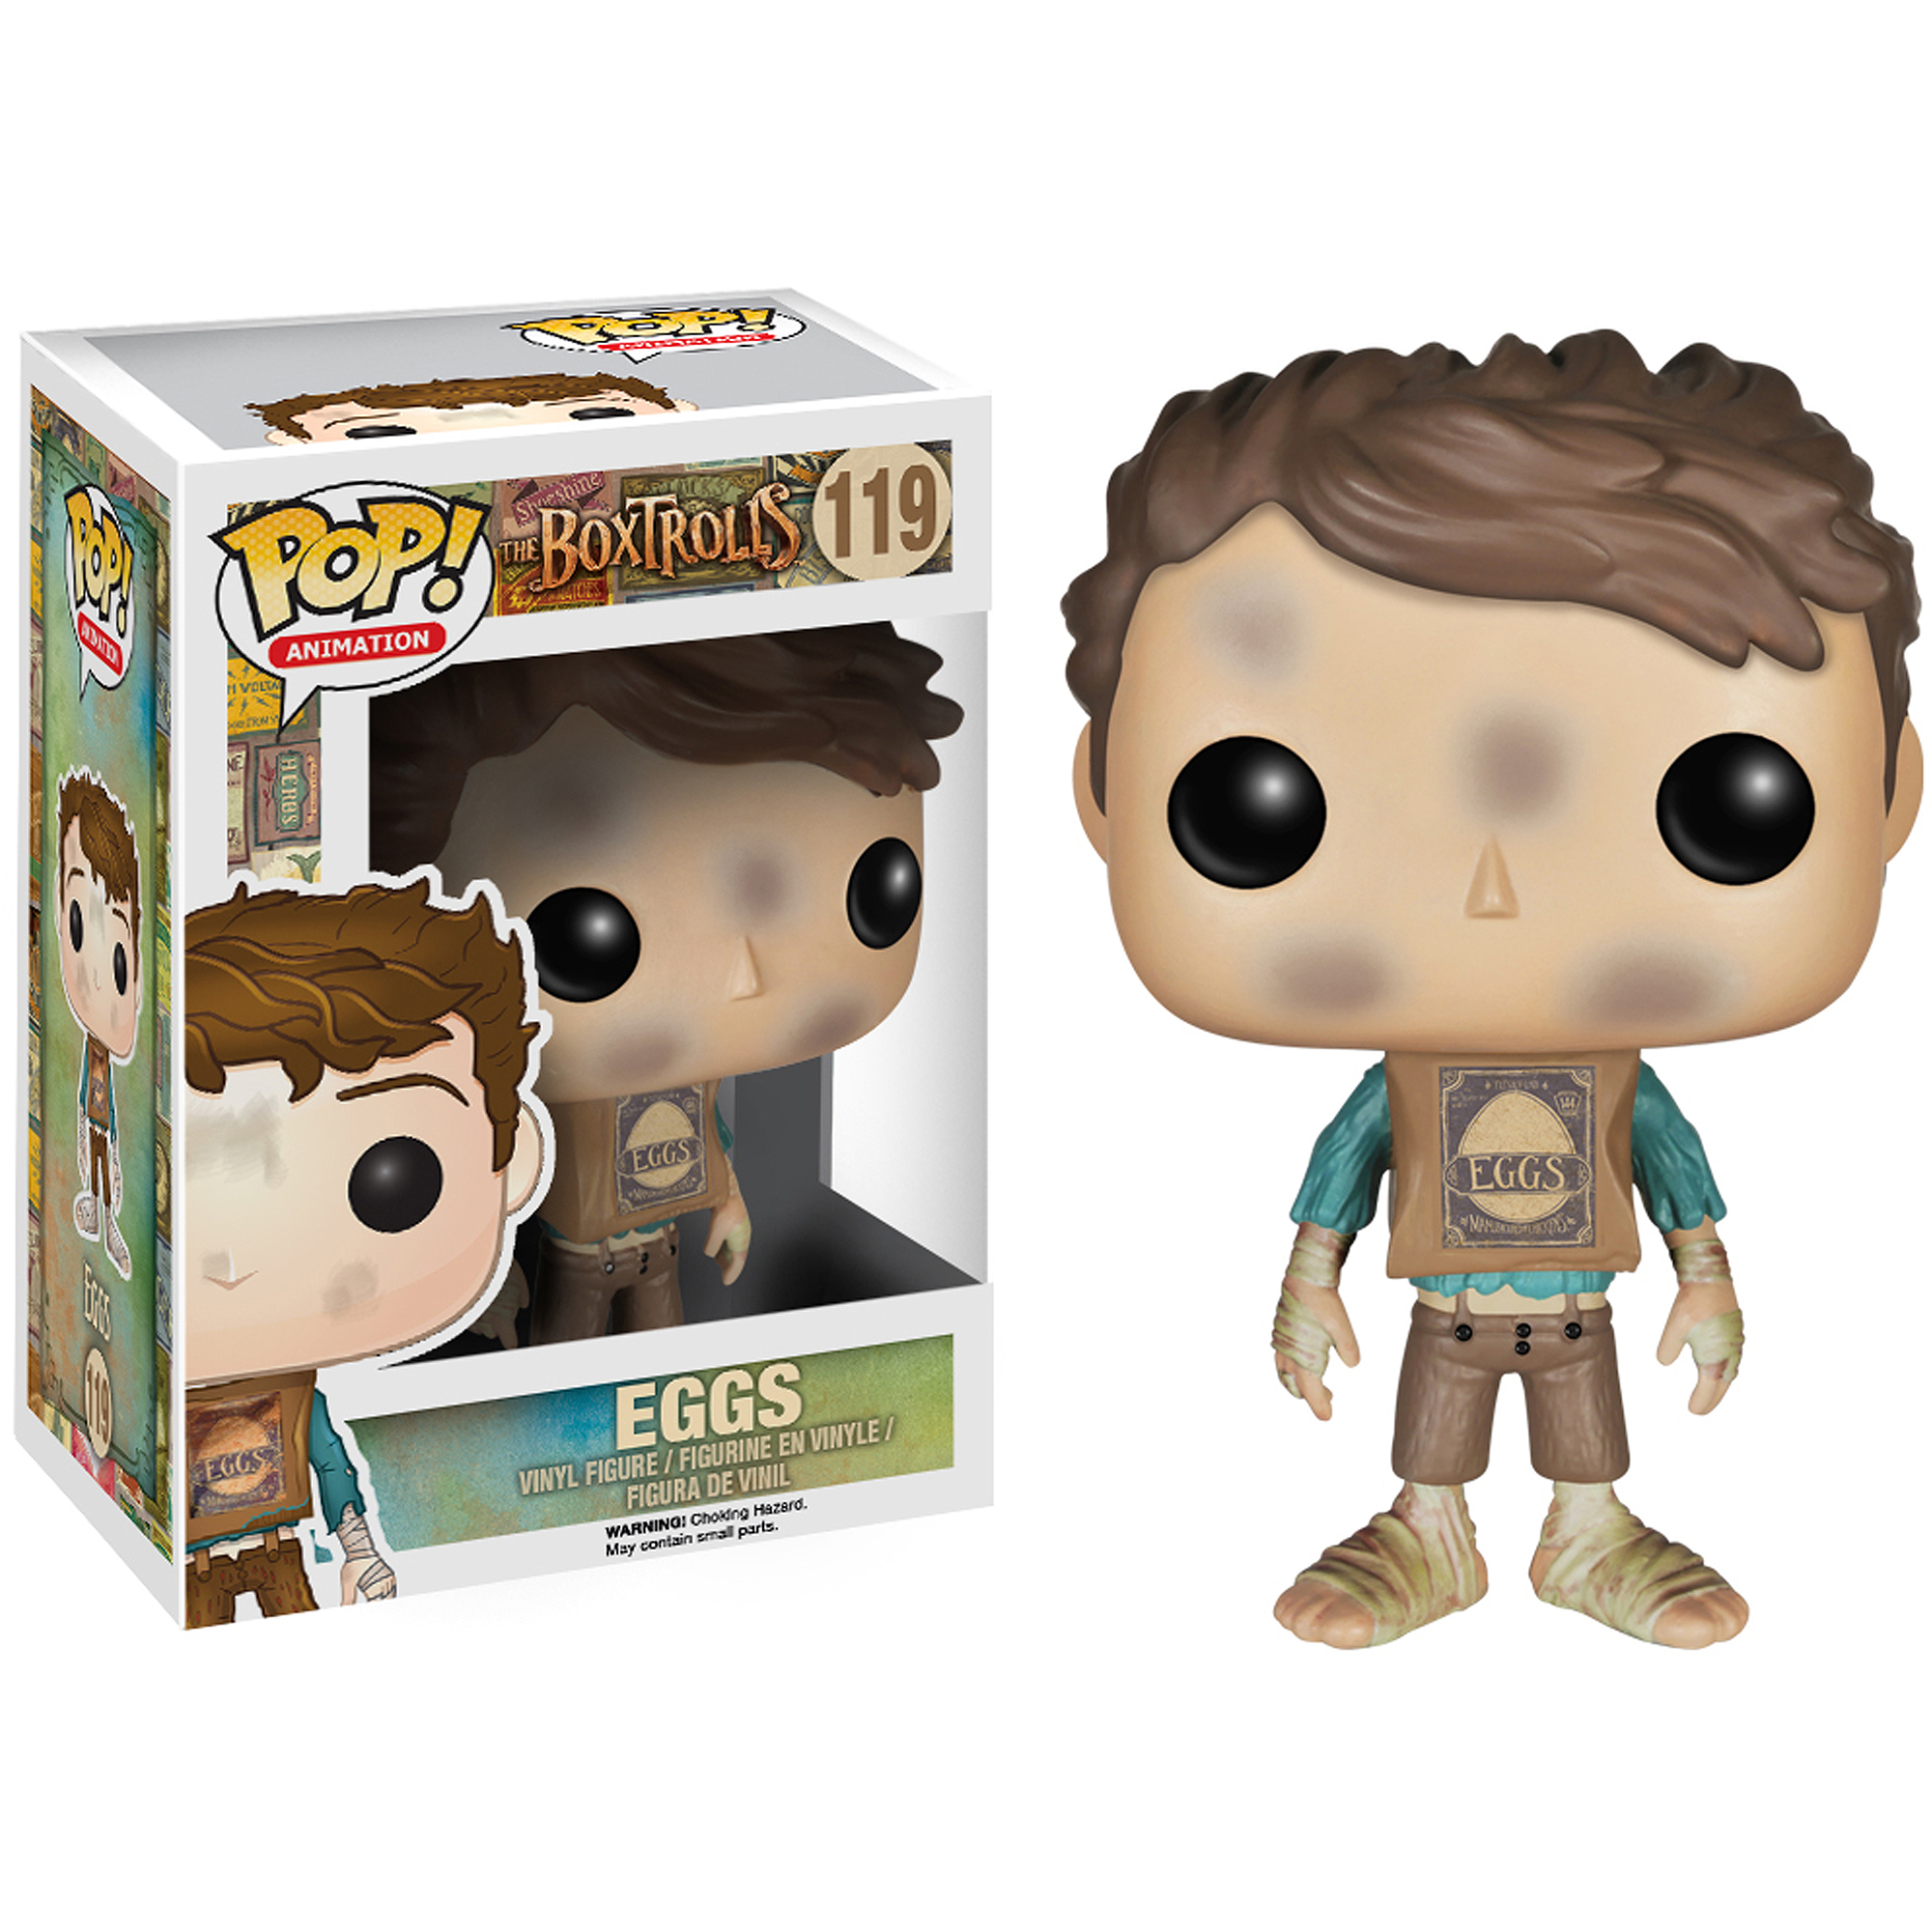 Funko Universal Studios The Boxtrolls Eggs Pop Vinyl Figure